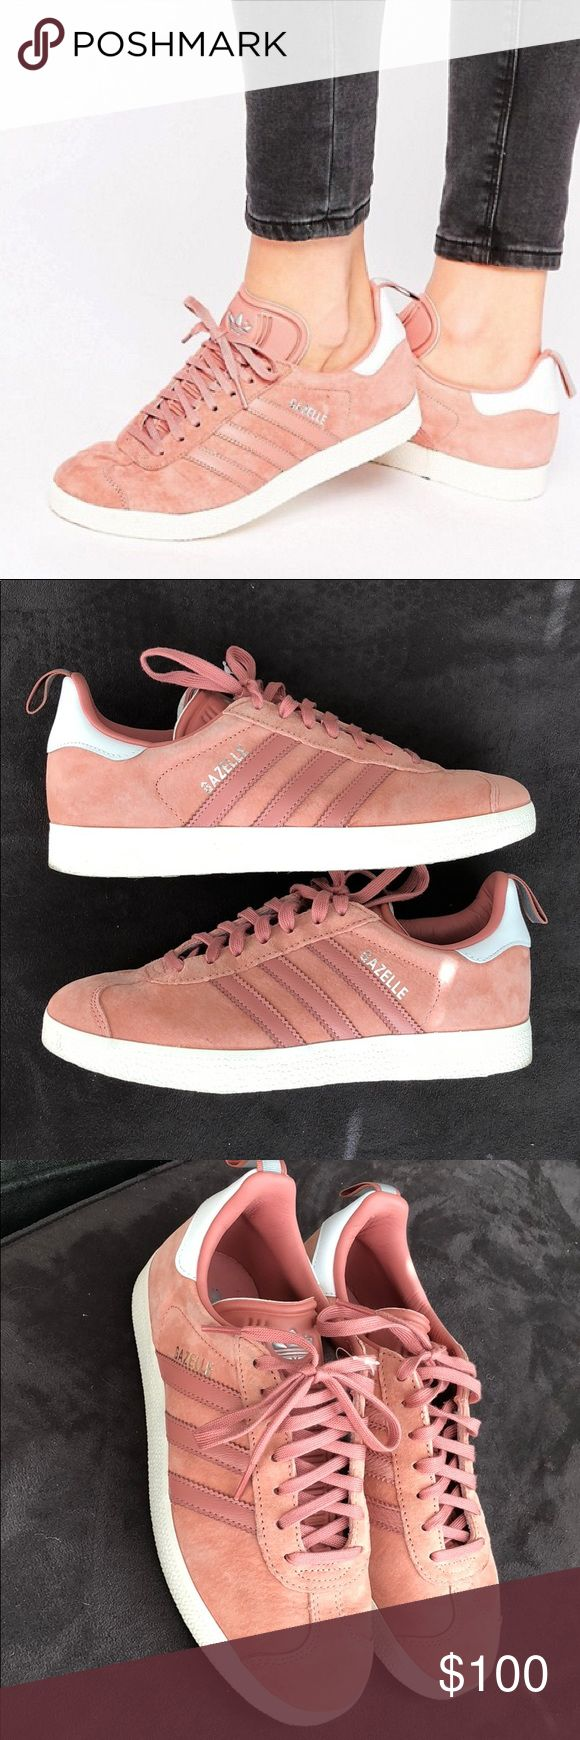 Adidas Originals Gazelle - dusty pink Ordered off ASOS for $120, no longer available. They fit like other gazelle styles which run a little big. They are a 6.5 but I would say it would fit a 7. Only worn once for a short period of time, as you can see from the bottom they are barely worn! They are a little big on be so I'm selling bc I missed the deadline to return adidas Shoes Sneakers